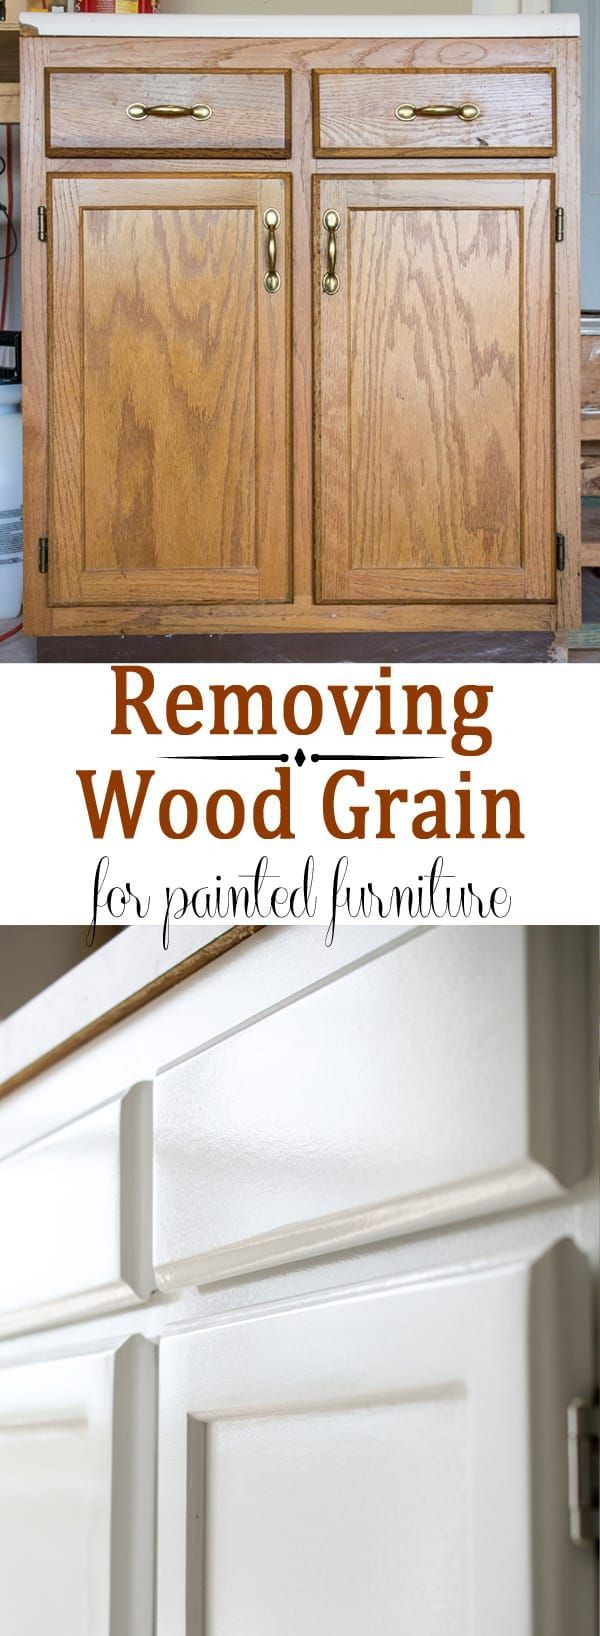 Painted Furniture Removing Wood Grain Texture How To Get A Nice Smooth Finish When Paint In 2020 Old Kitchen Cabinets Painting Oak Cabinets Kitchen Cabinets Makeover